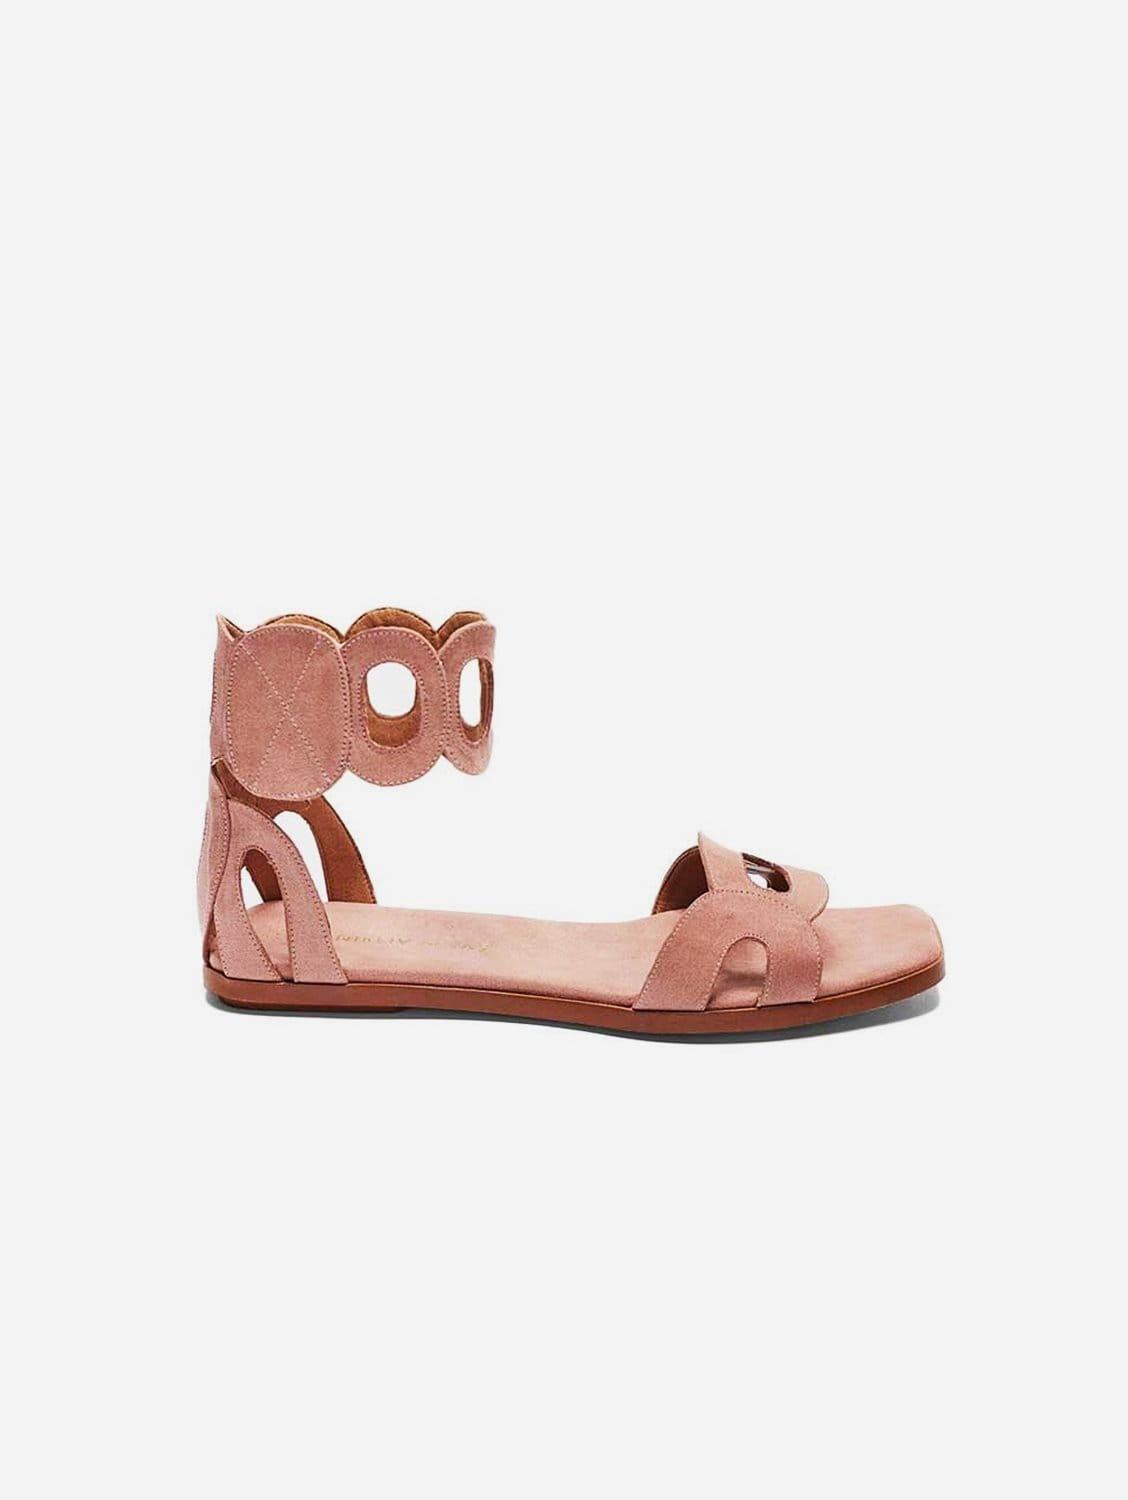 Hortensia Recycled Polyester Vegan Suede Ankle Sandal | Pink